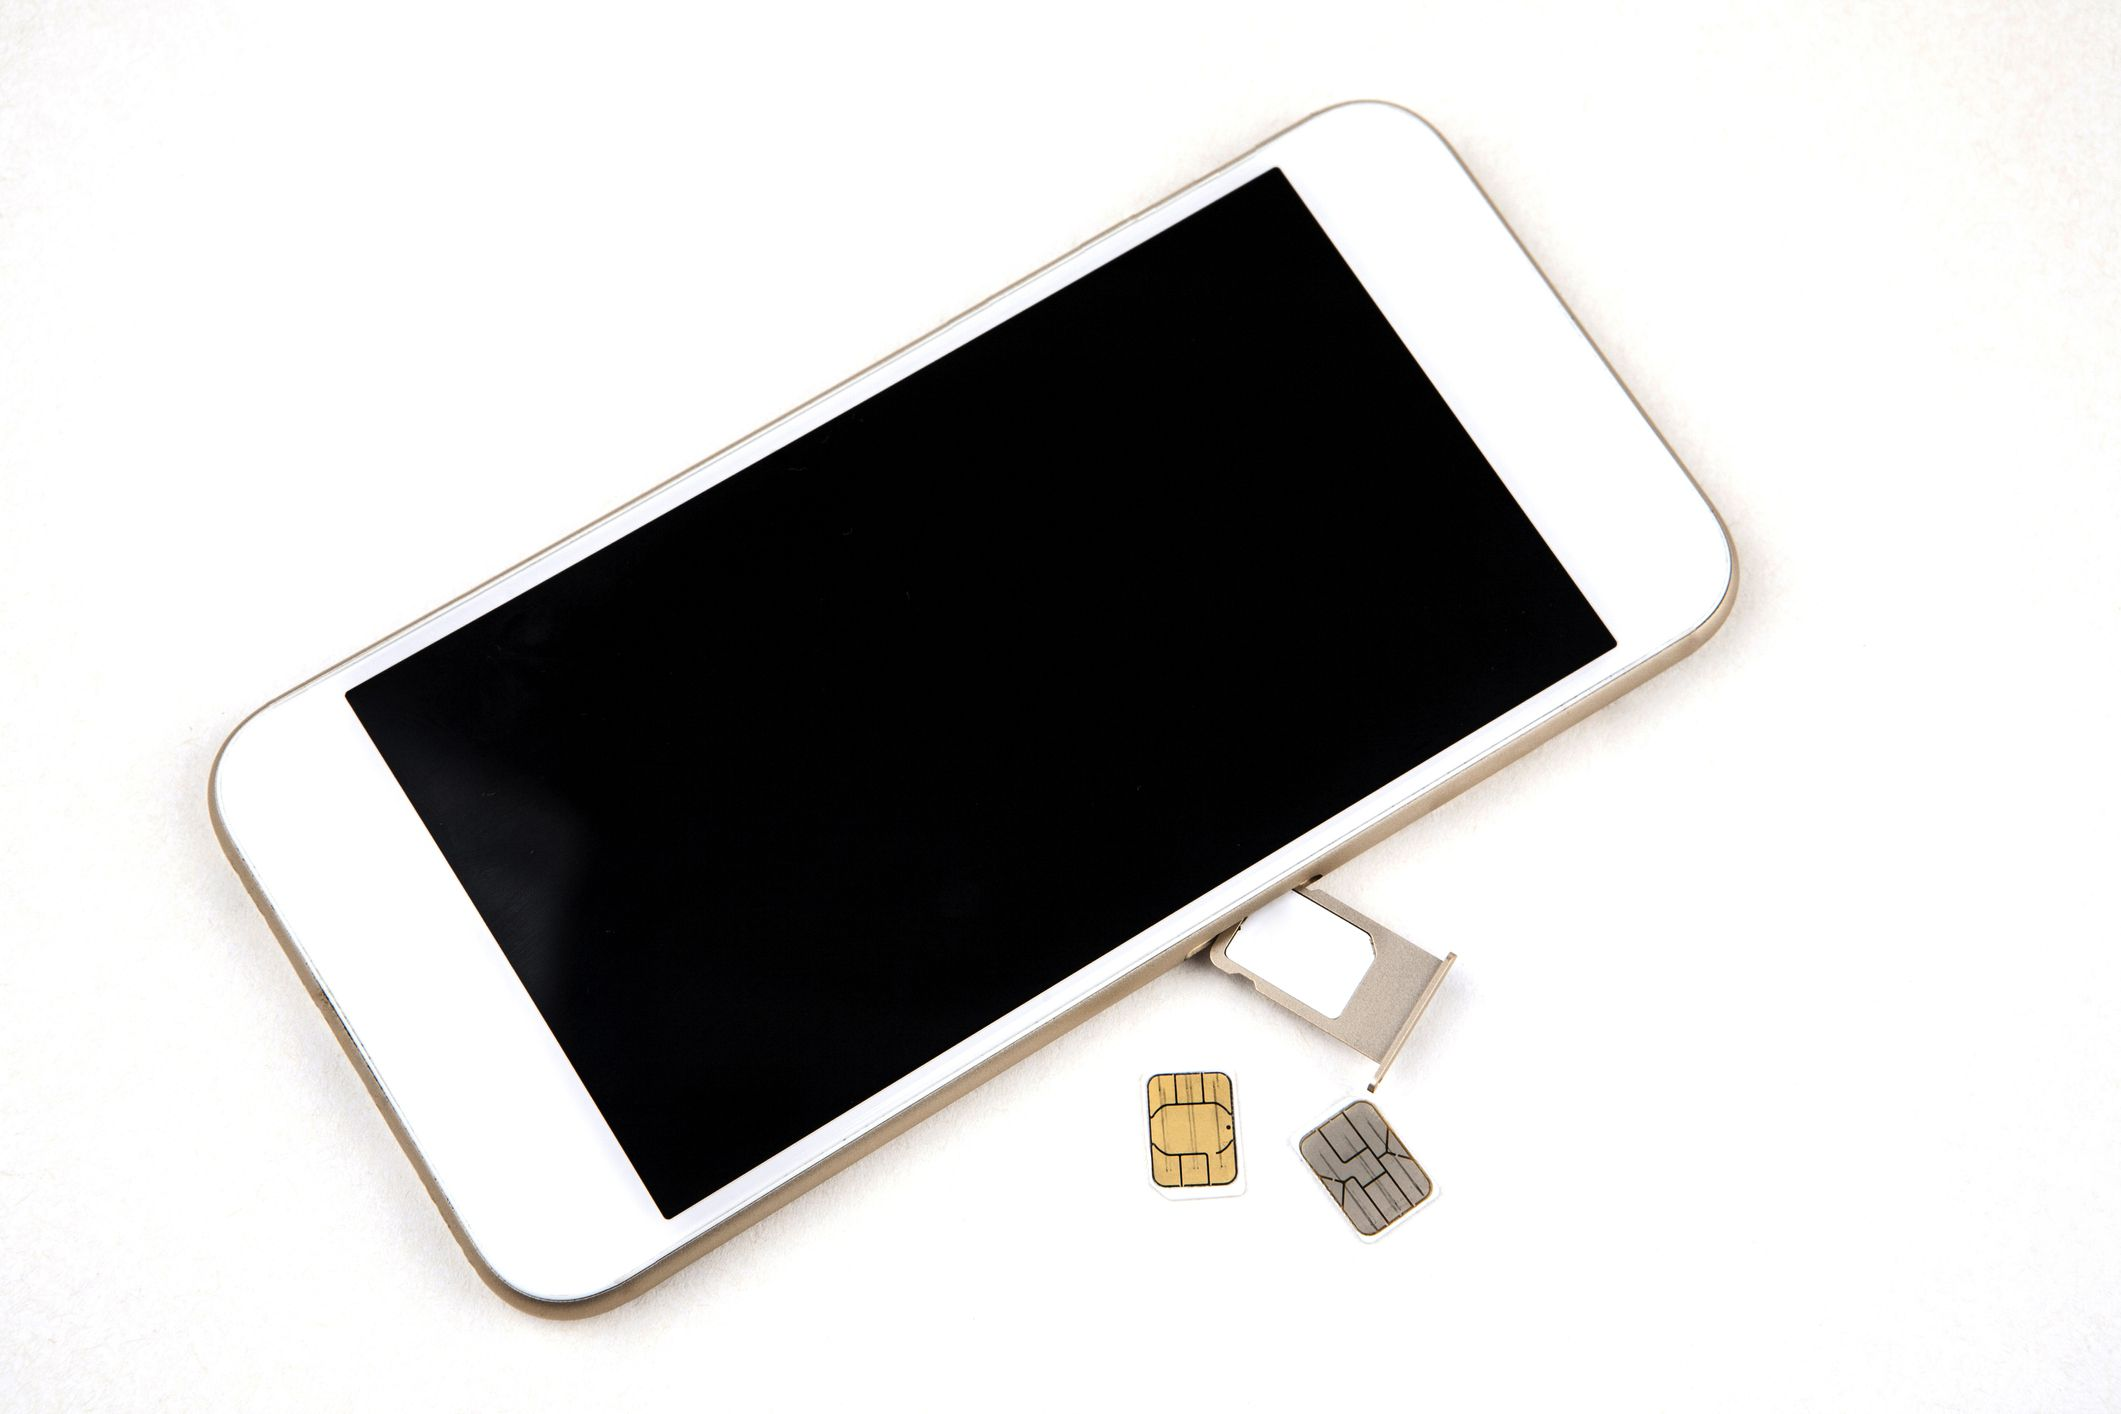 How to Check if an iPhone is Unlocked